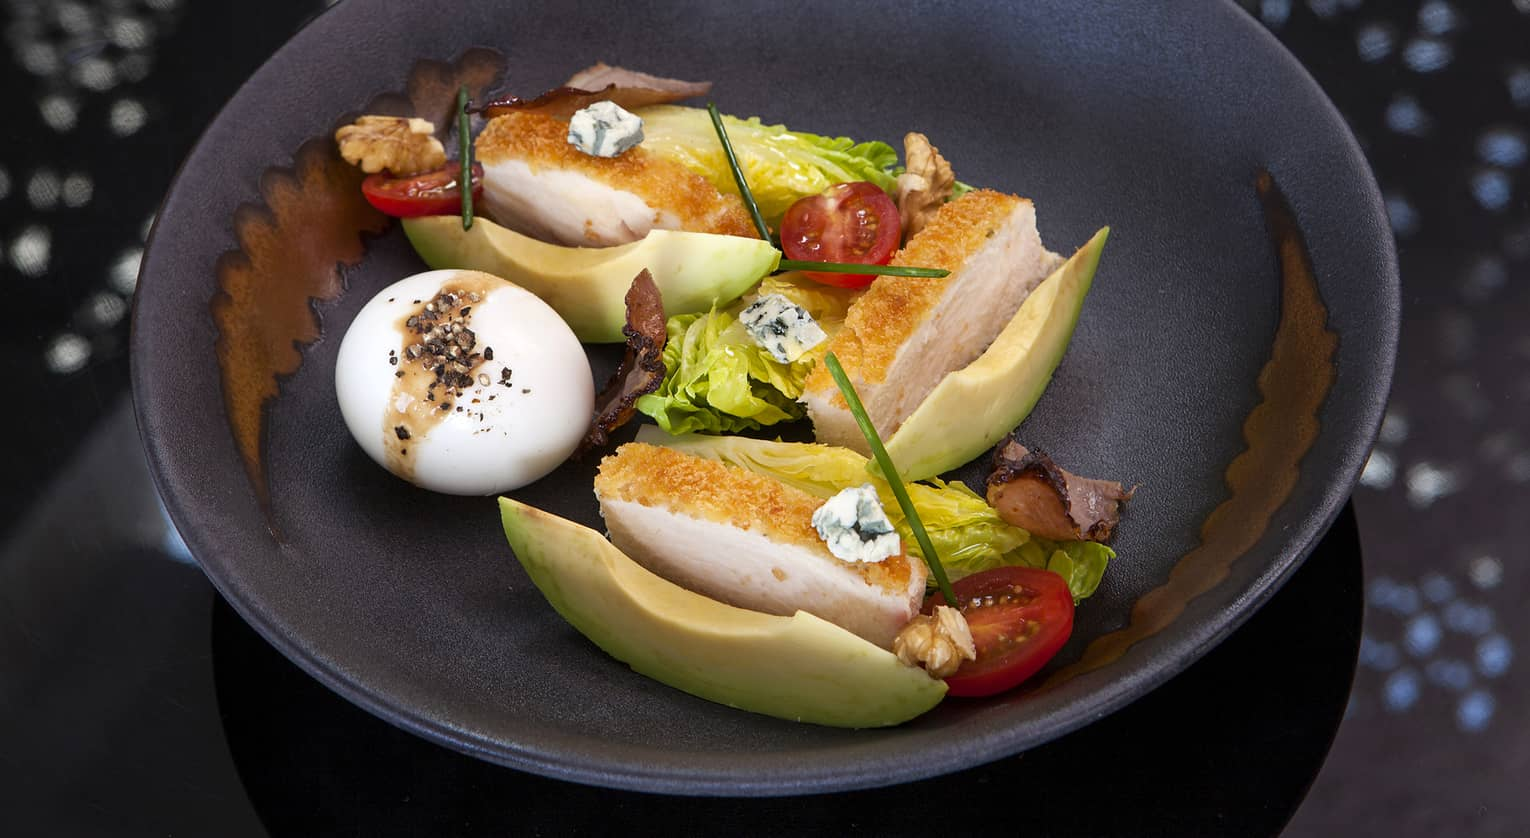 A Cobb Salad with chicken breast, a hardboiled egg, avocado, tomatoes, lettuce and blue cheese